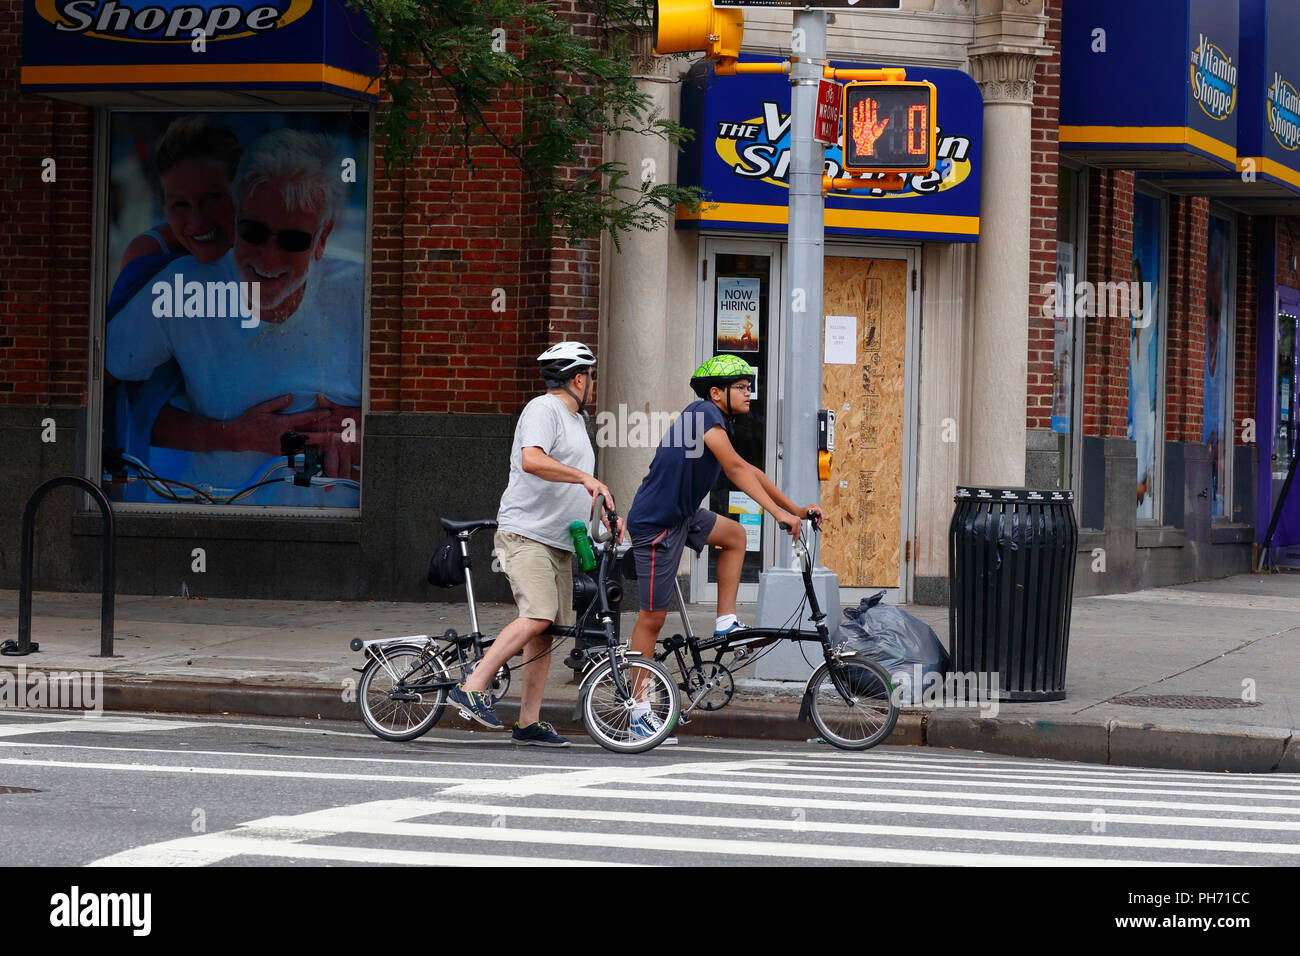 Cyclists on Brompton folding bicycles - Stock Image